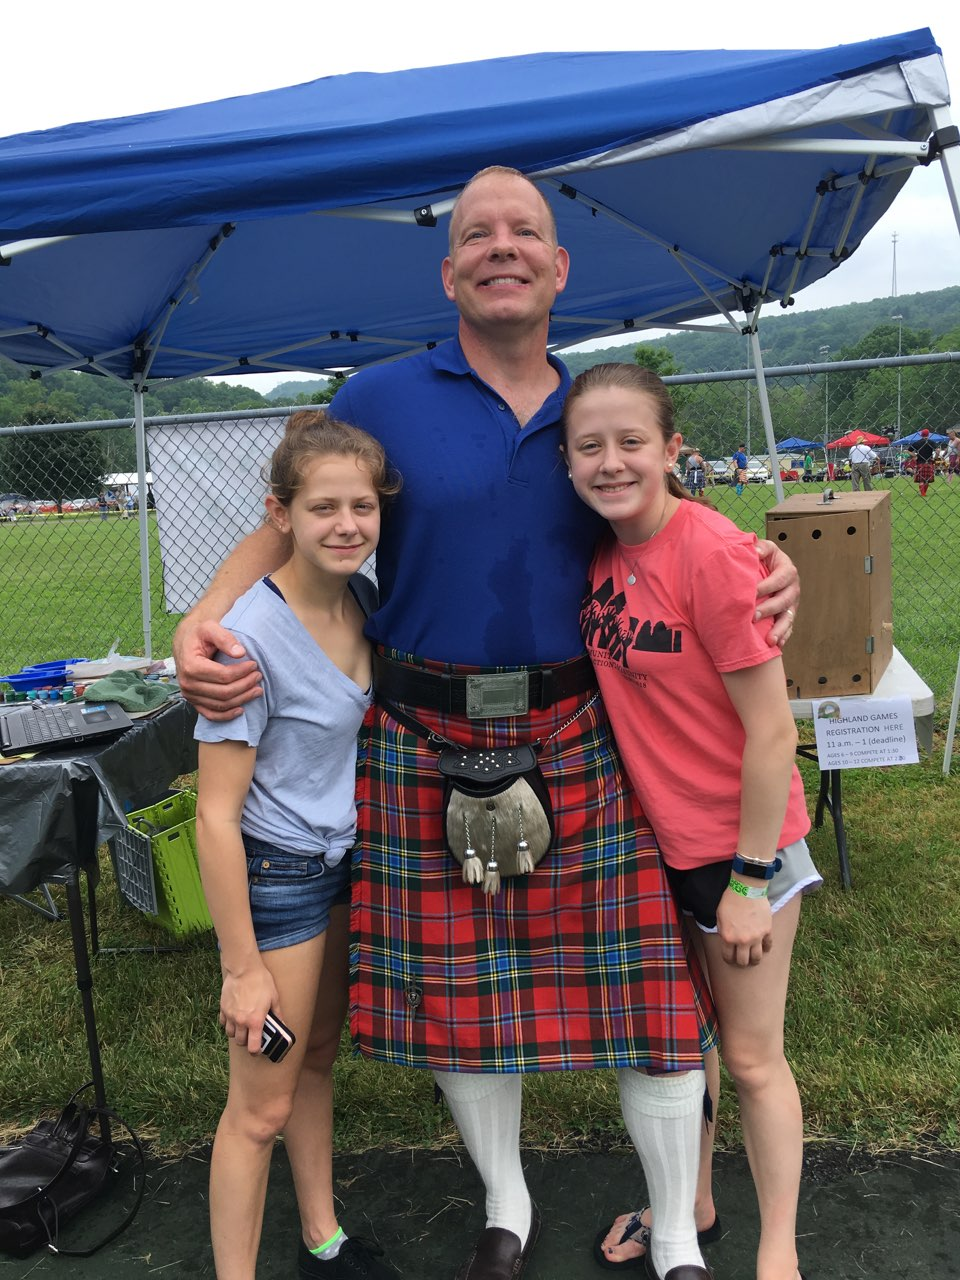 John Miles  , reitired Marine and active duty Scots-Irish Heritage expert, will be presenting at Maury Middle School on Friday the 28th and on Main Street during the Festival on Saturday.